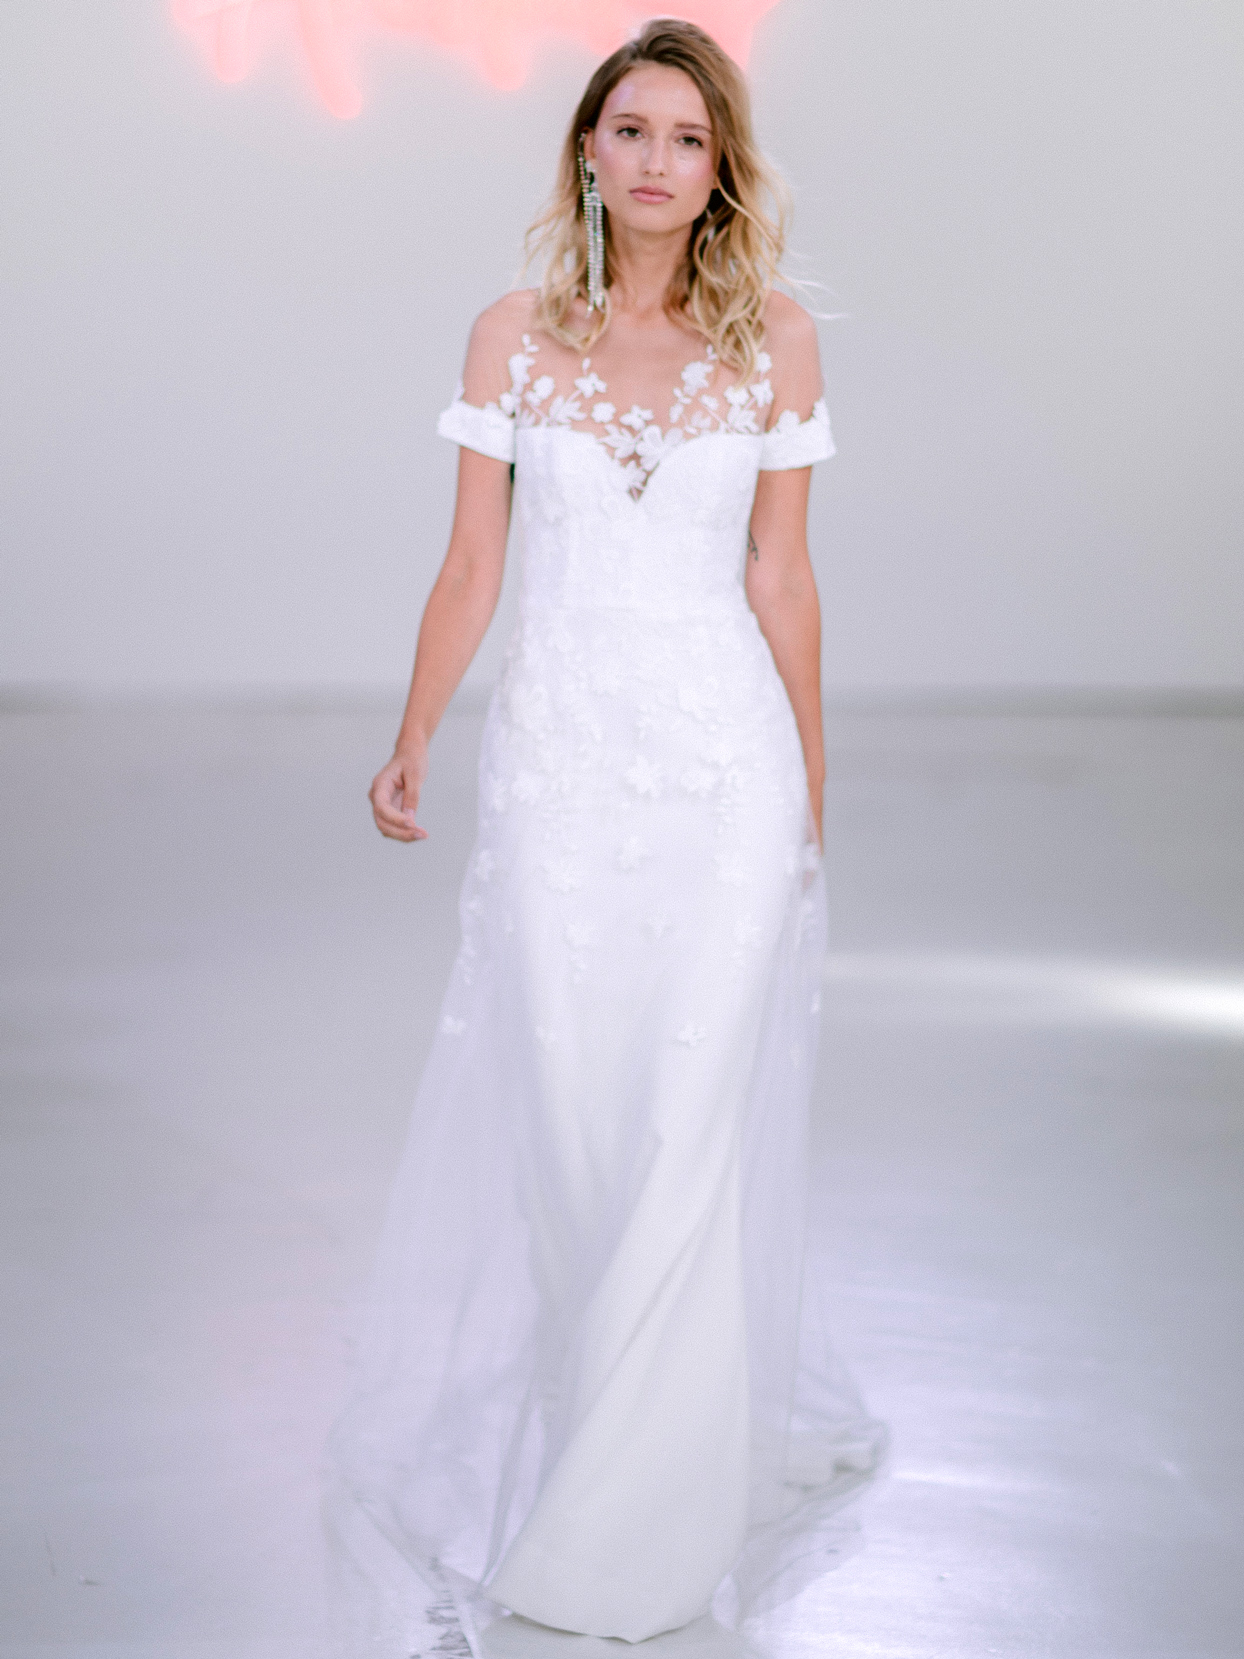 Rime Arodaky X The Mews Bridal illusion lace high neck short sleeve wedding dress fall 2020